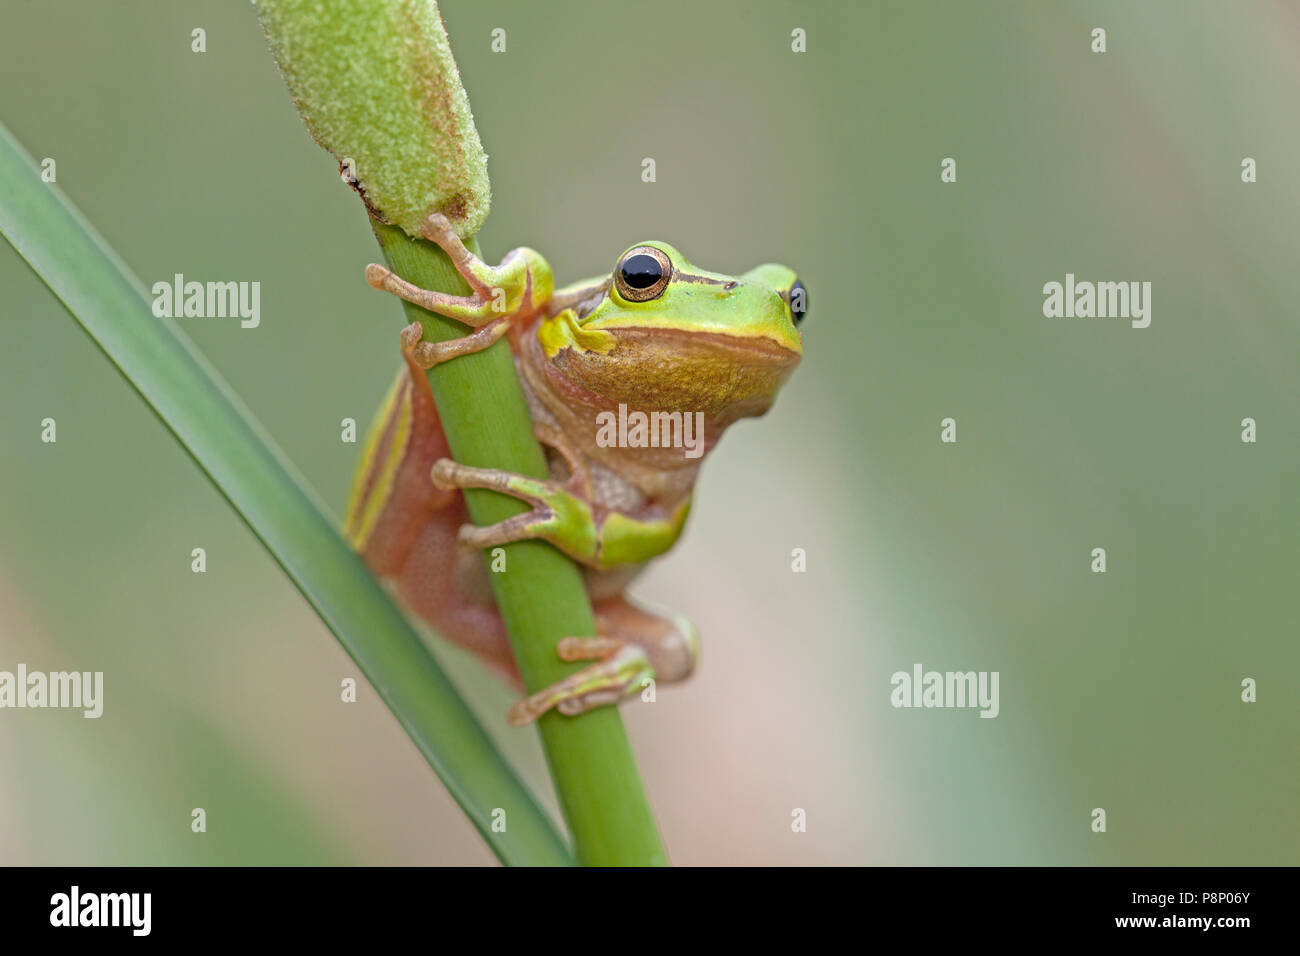 Hyla arborea; common tree frog Stock Photo